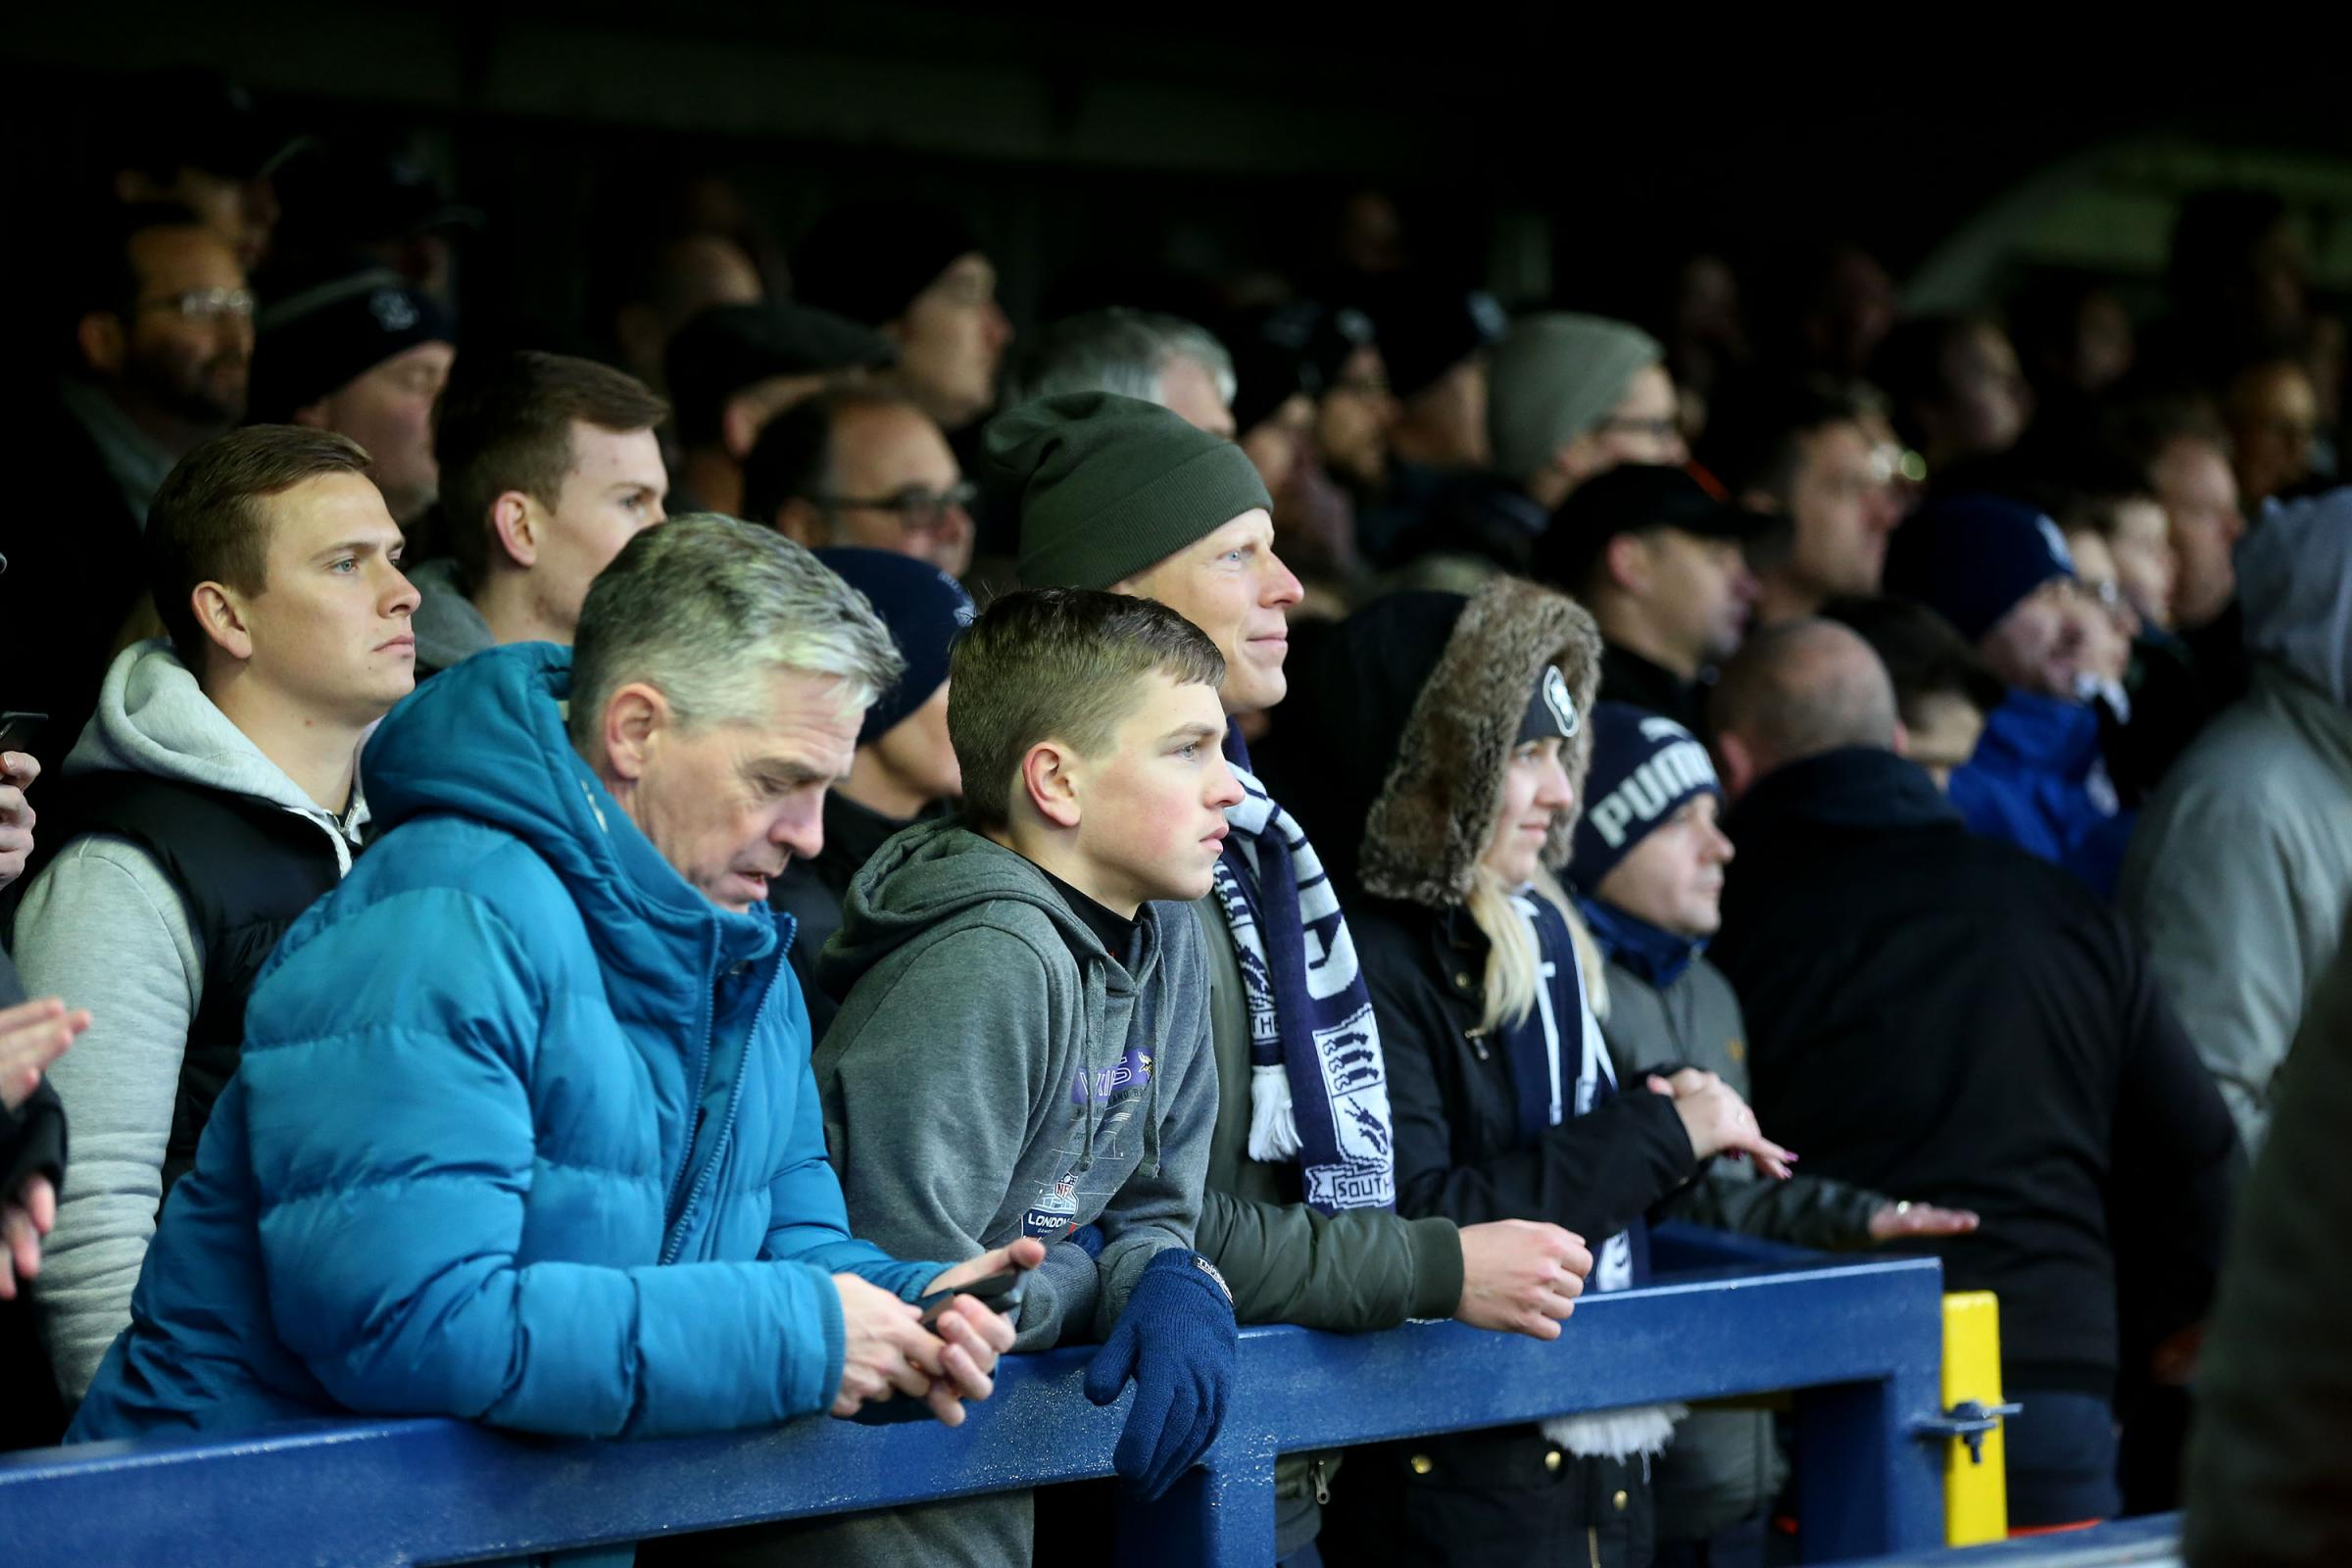 Frustrated - Southend United's travelling supporters at AFC Wimbledon